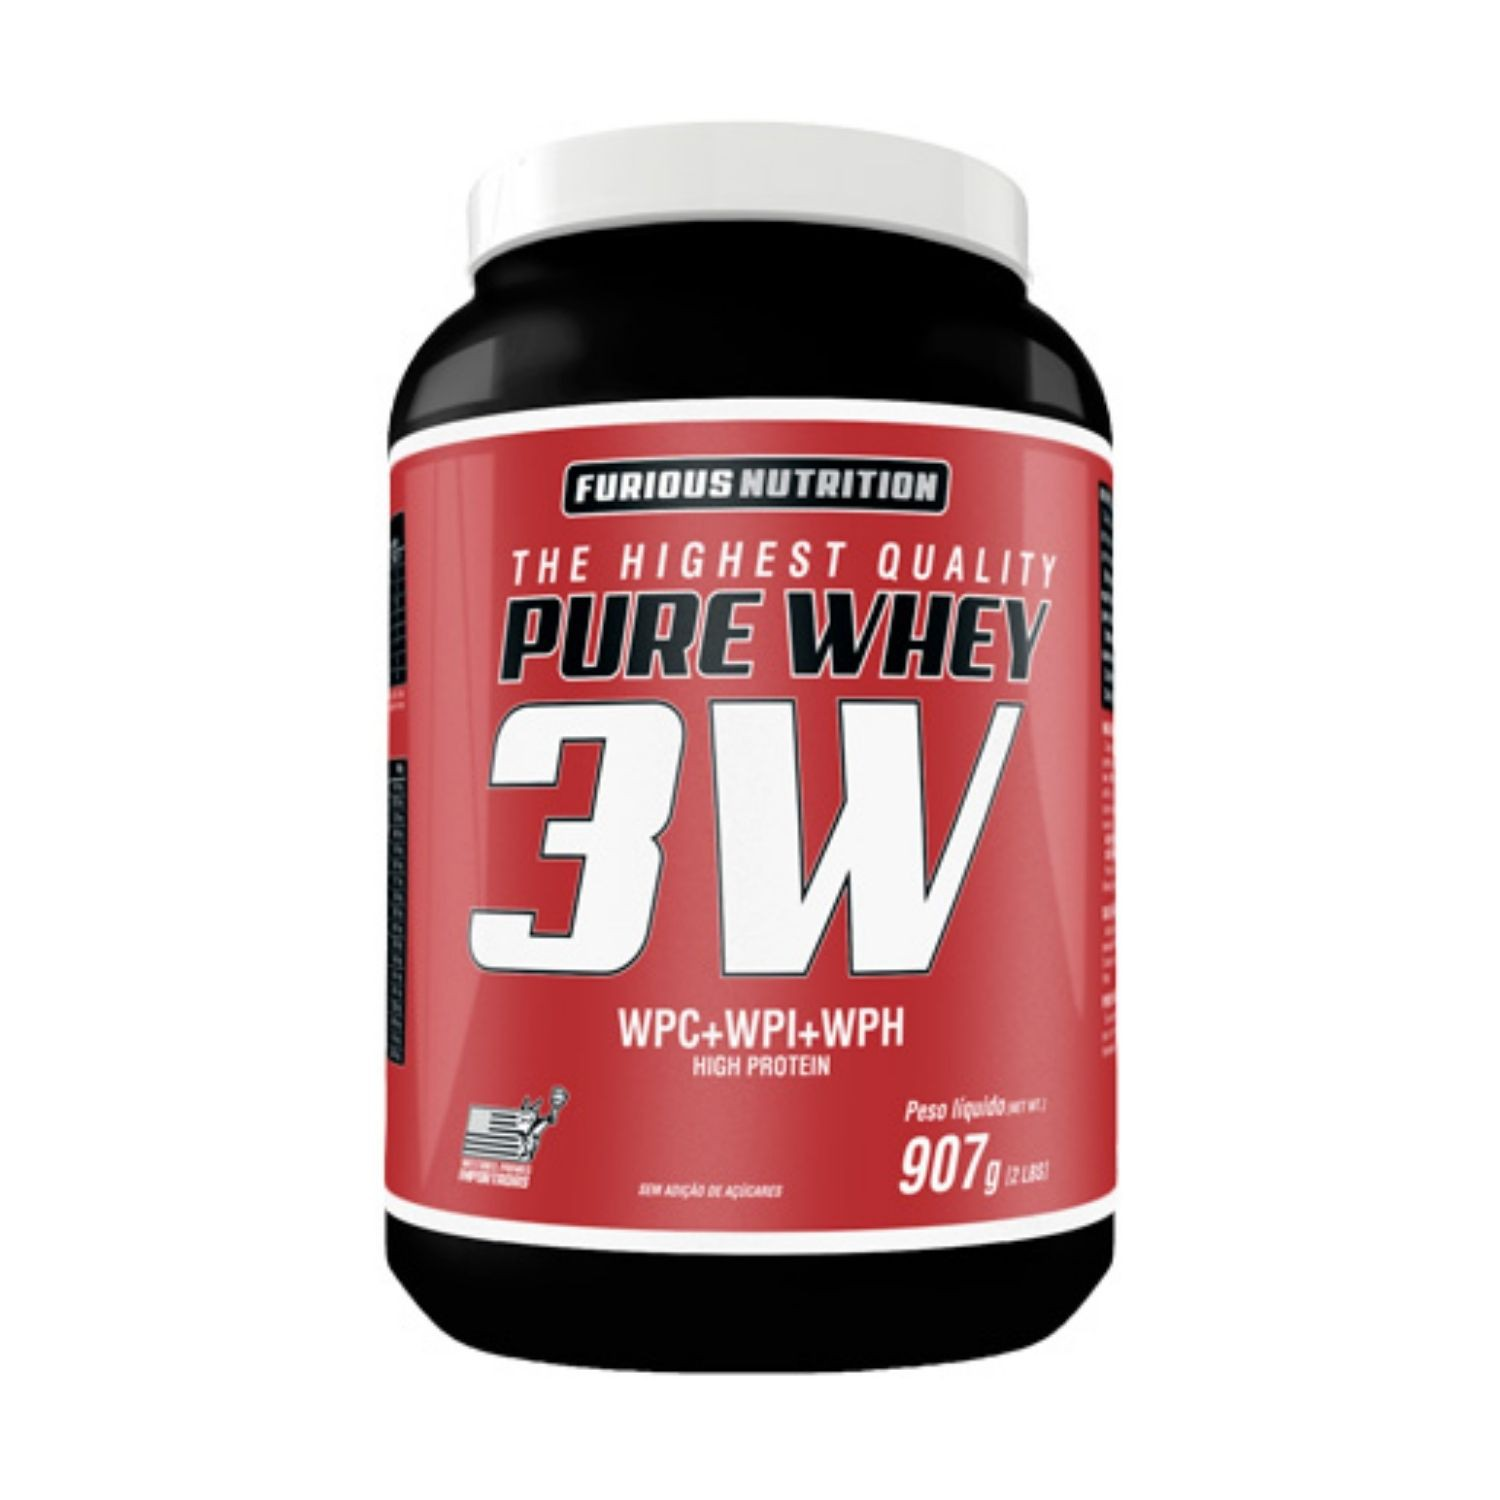 Pure Whey 3W 907g Furious Nutrition